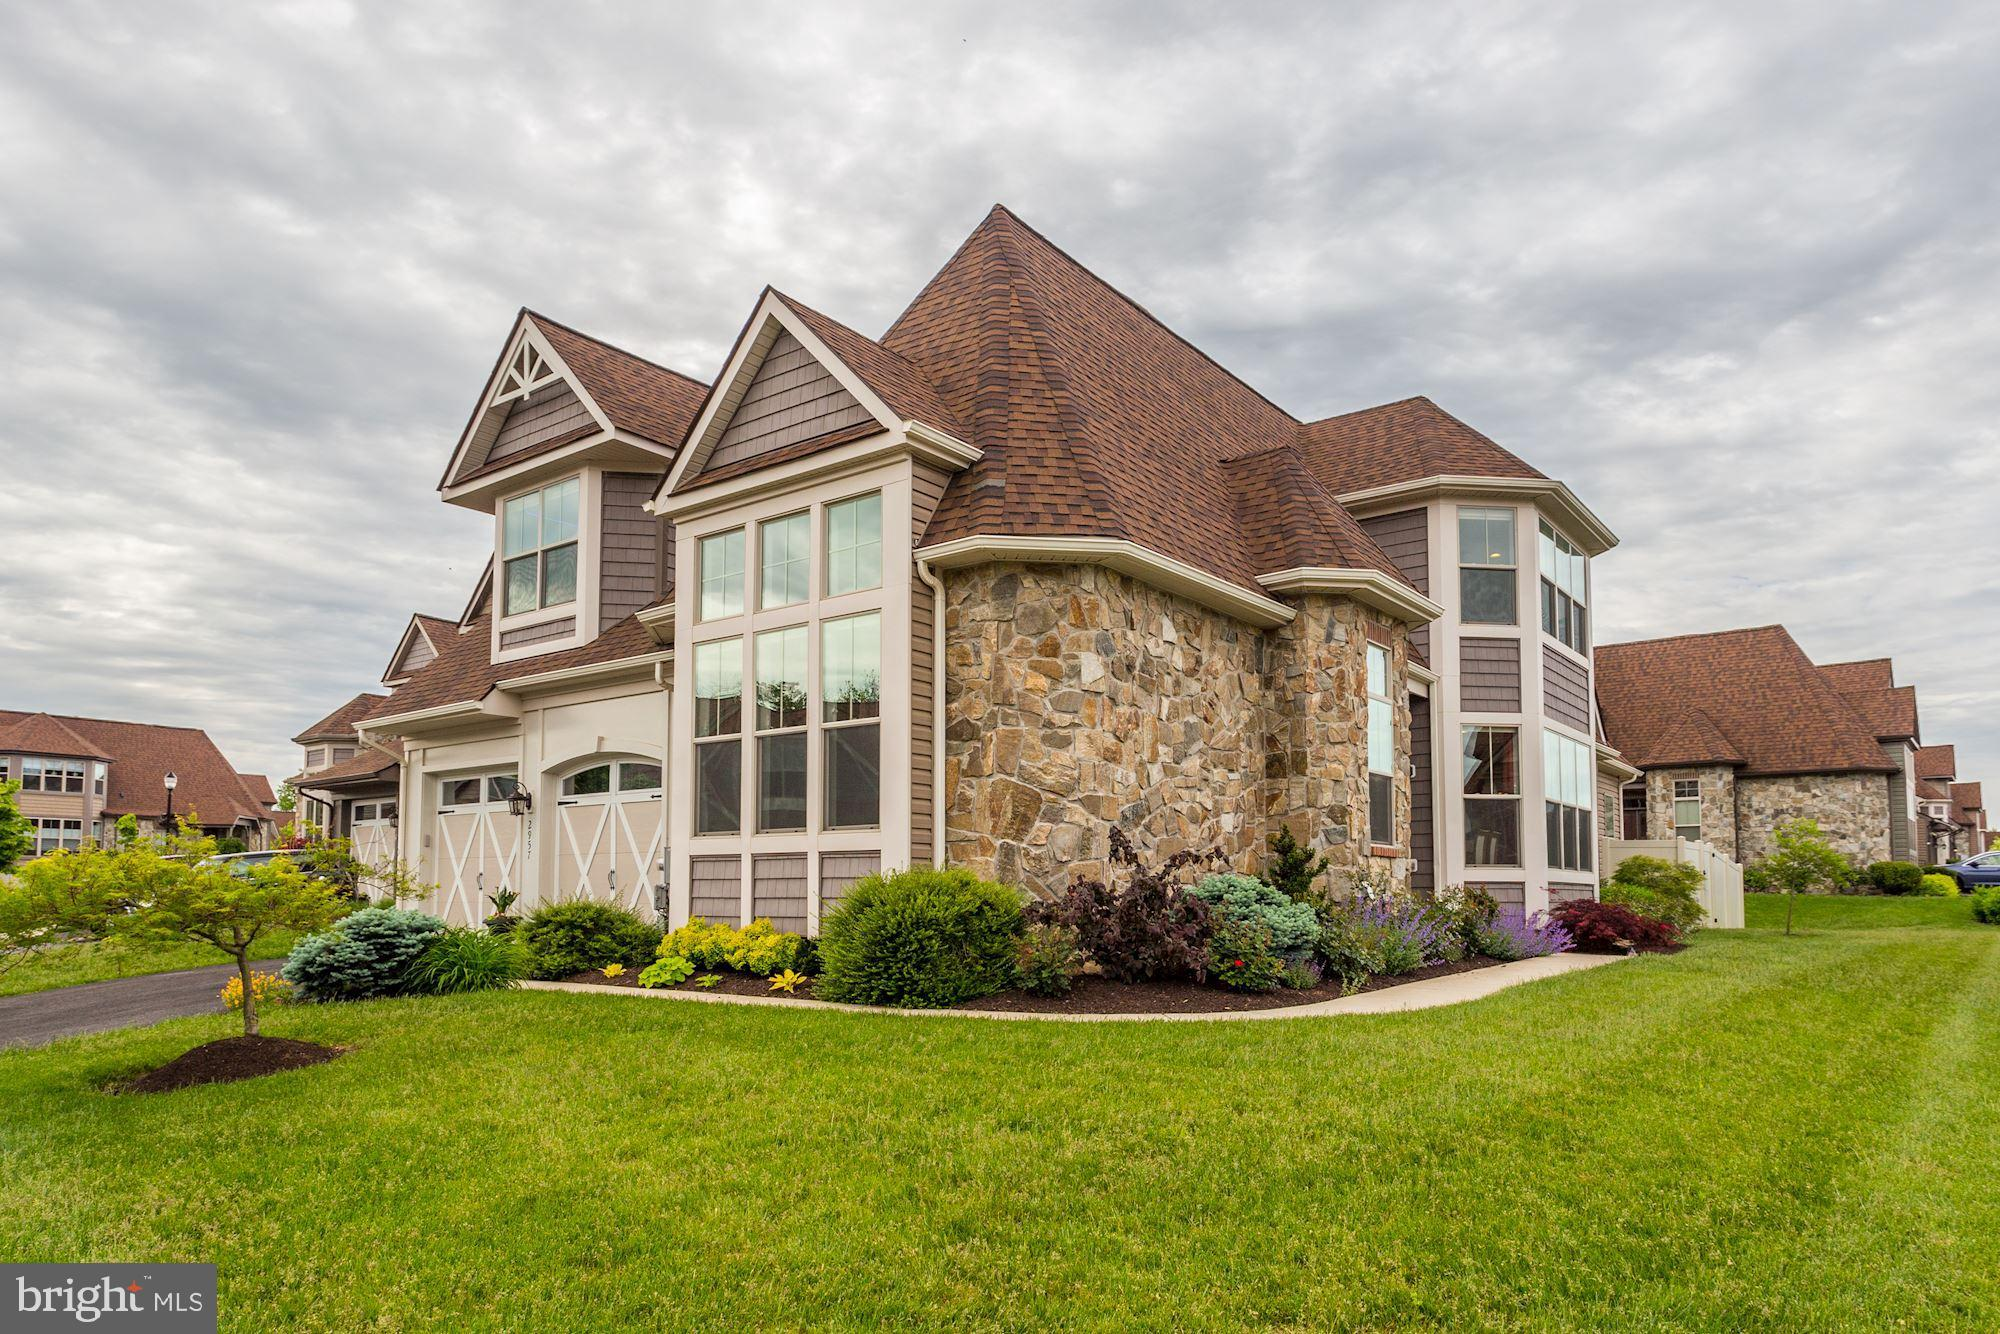 2957 Mill Island Pky, Frederick, MD, 21701